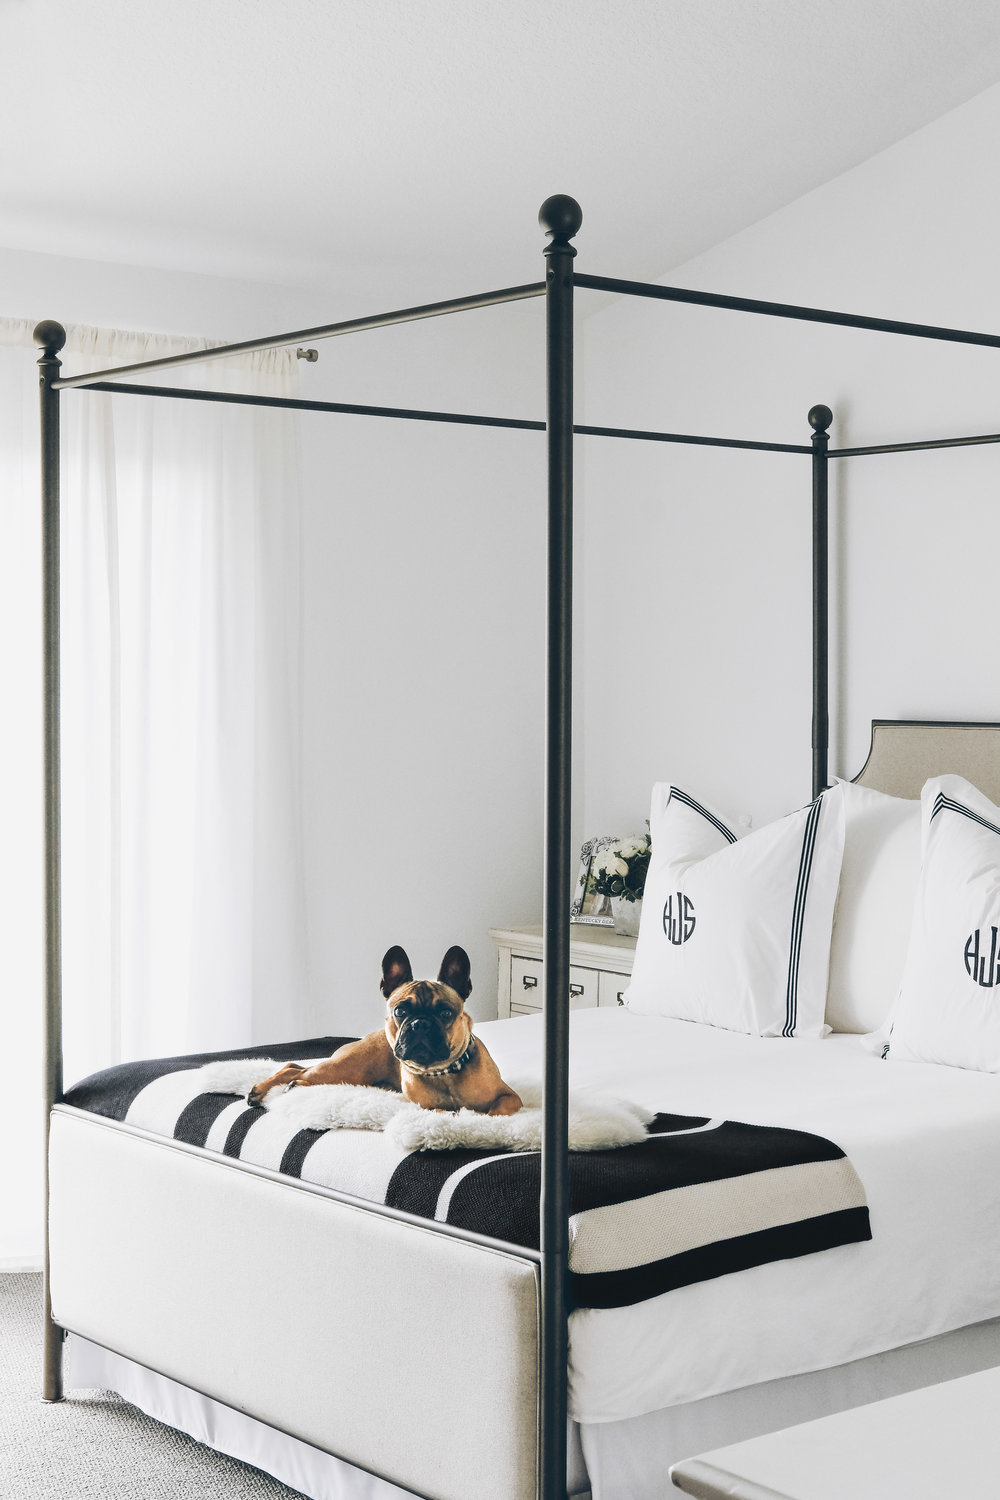 Black and White Vintage Industrial Bedroom.  Joss & Main Marianne Upholstered Canopy Bed, Olympus Nightstands, Pottery Barn Grand Embroidered Euro Shams and striped blanket.